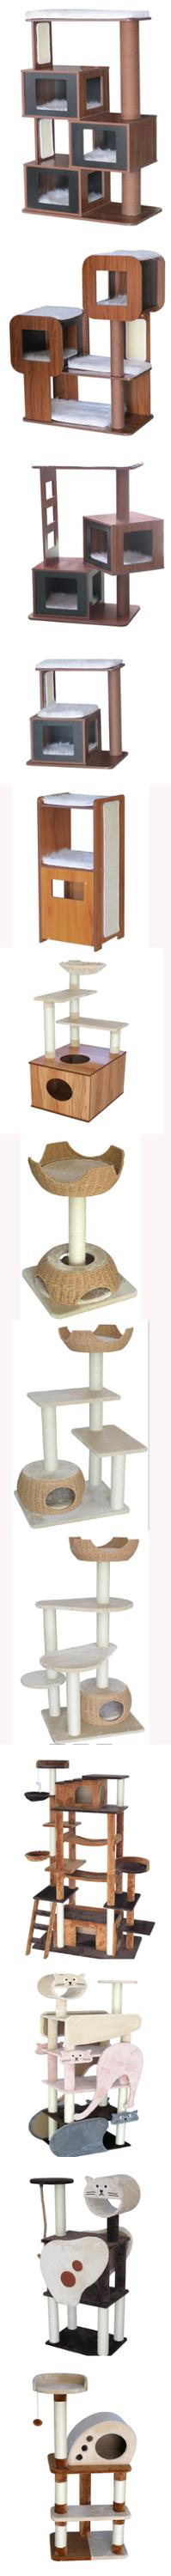 QQPET Factory Price Wholesale Pet Products Pet Toy Pet Bed Cat Tree